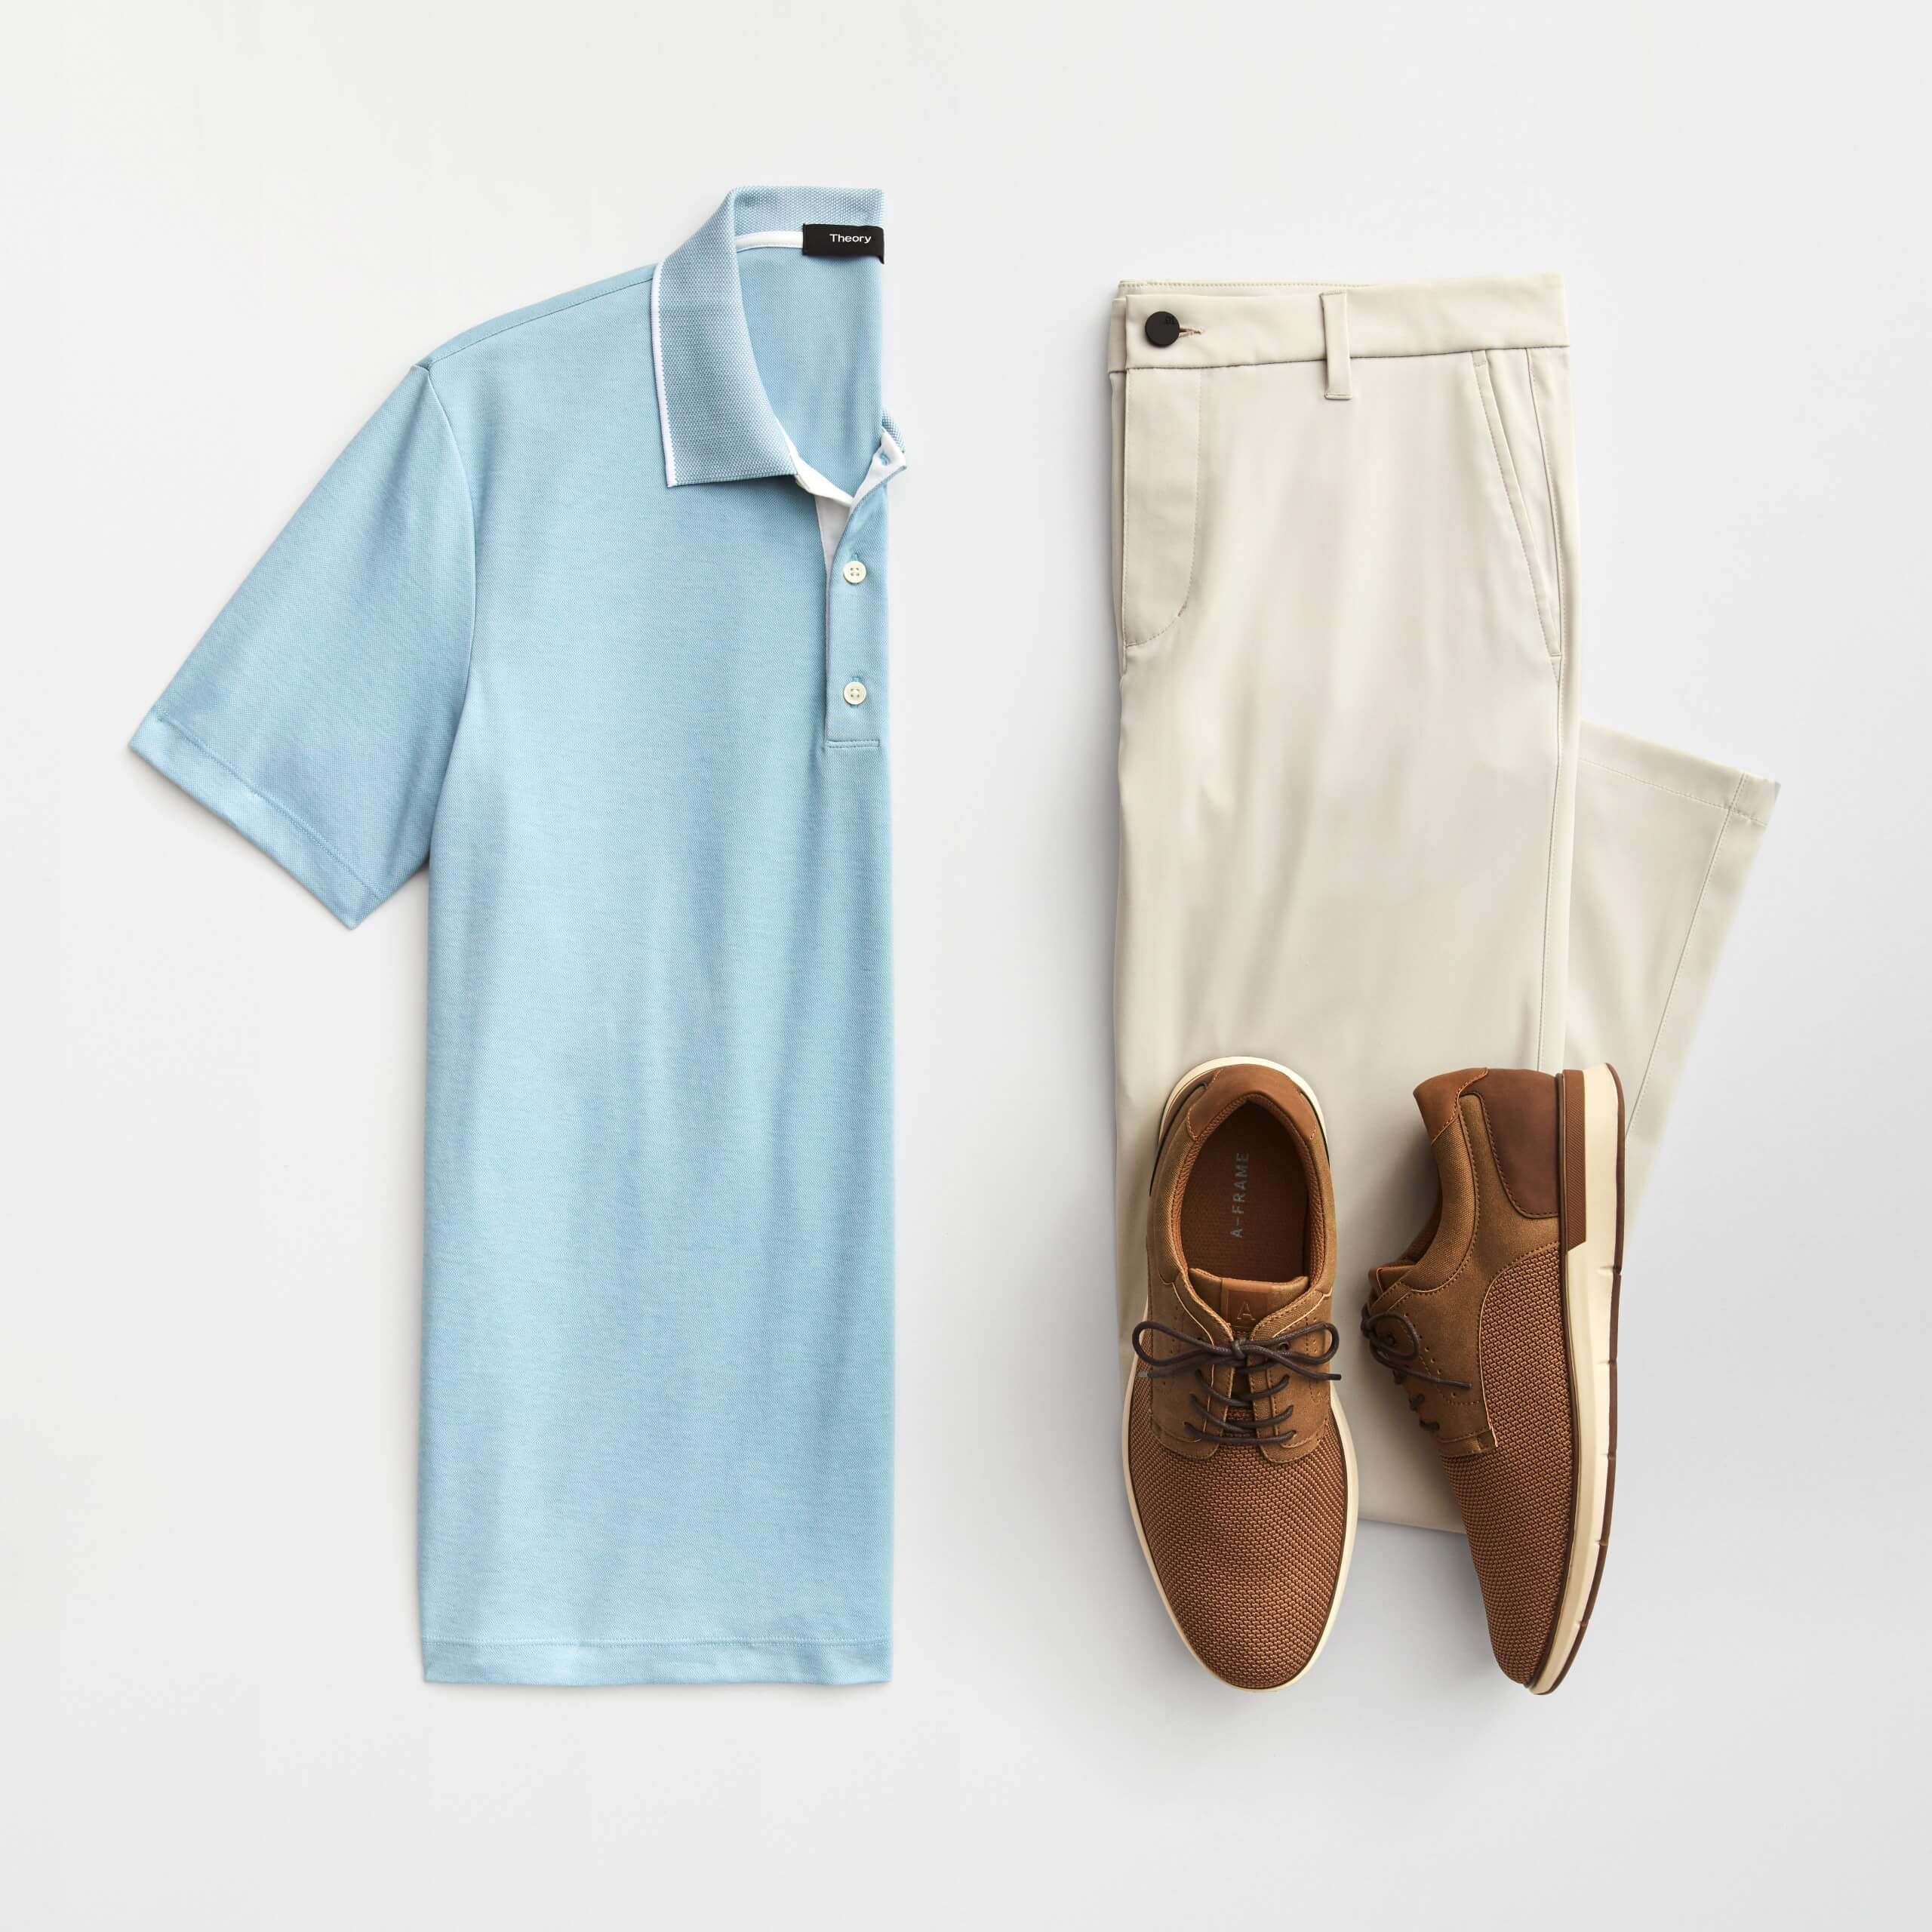 Stitch Fix Men's outfit laydown featuring light blue polo, cream golf pants and brown oxfords.